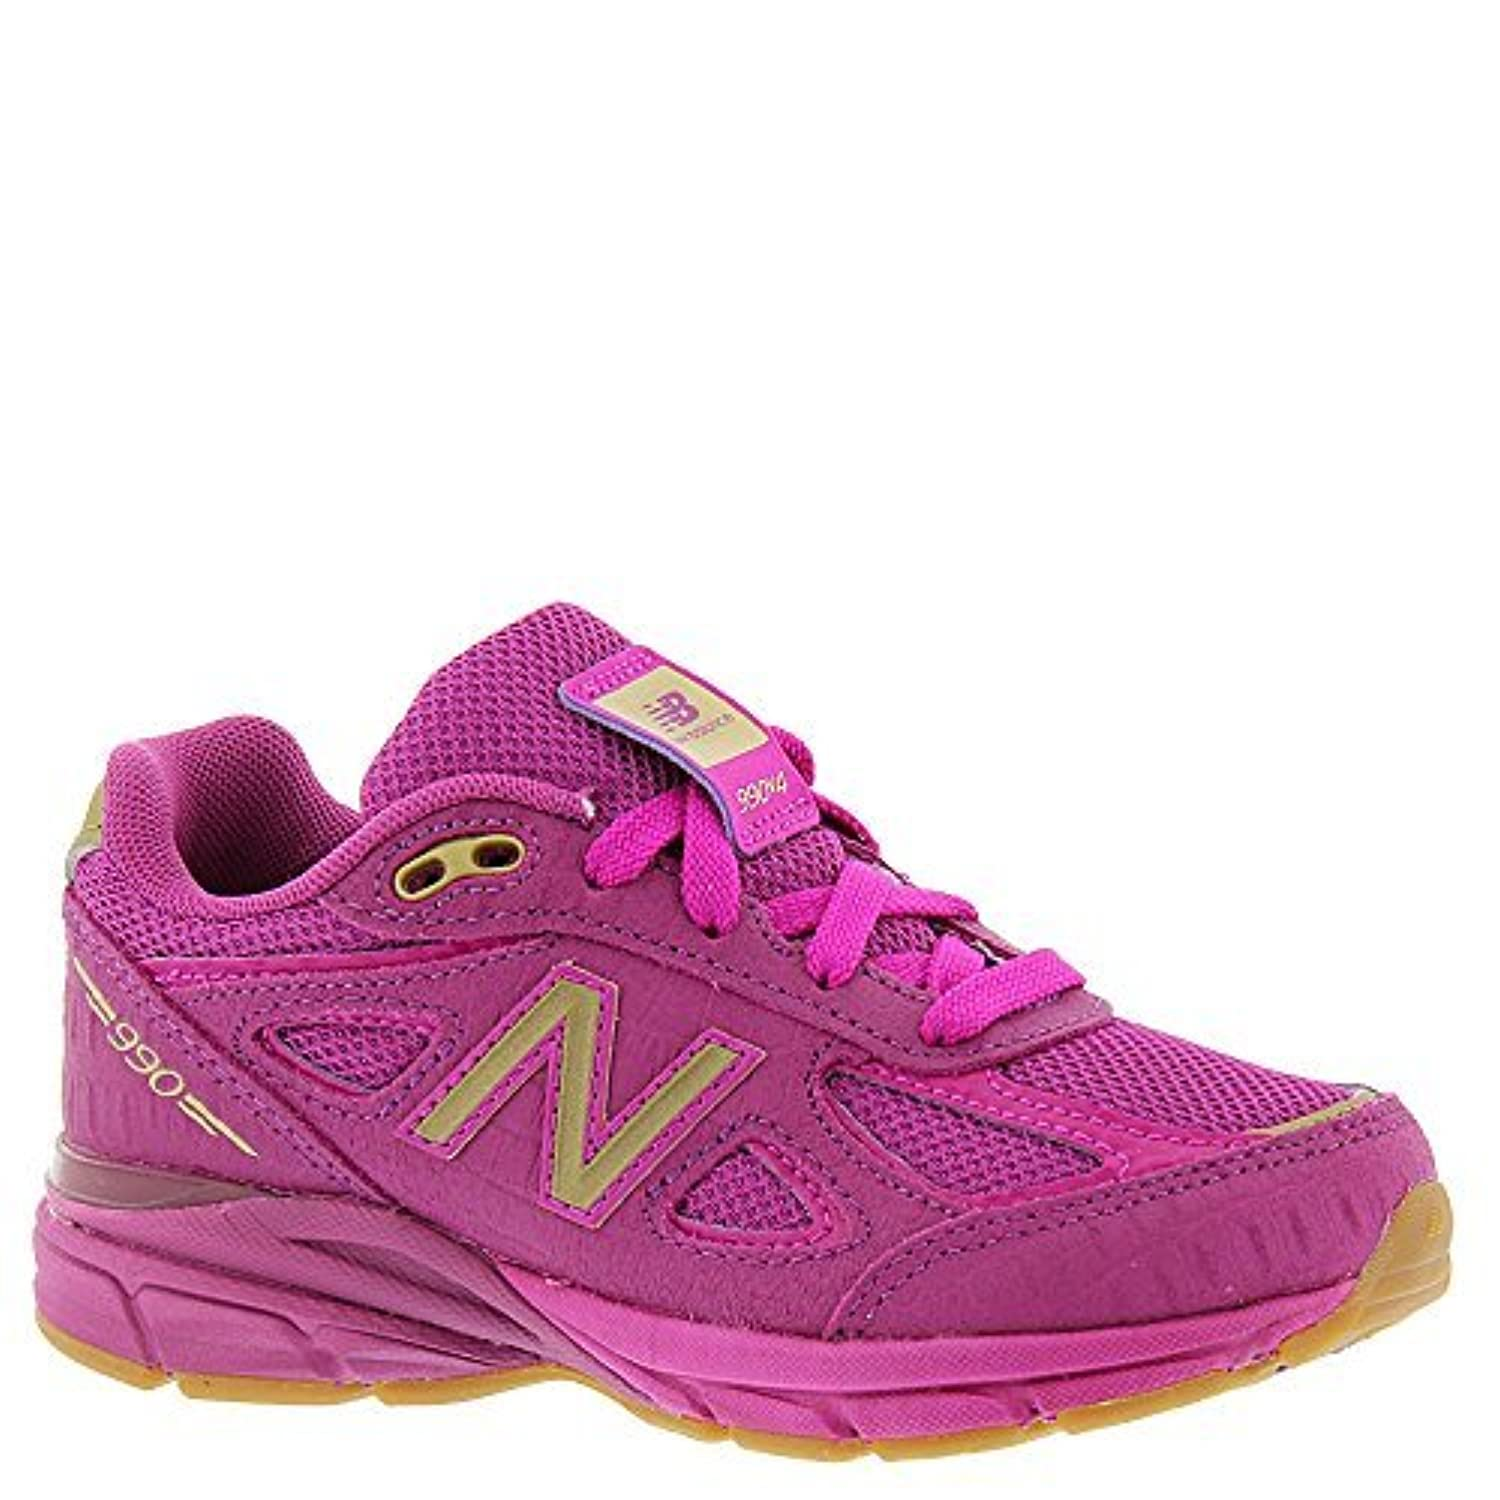 New Balance KJ990V4 Pre Running Shoe (Little Kid) Purple/Purple 12.5 M US Little Kid [並行輸入品]